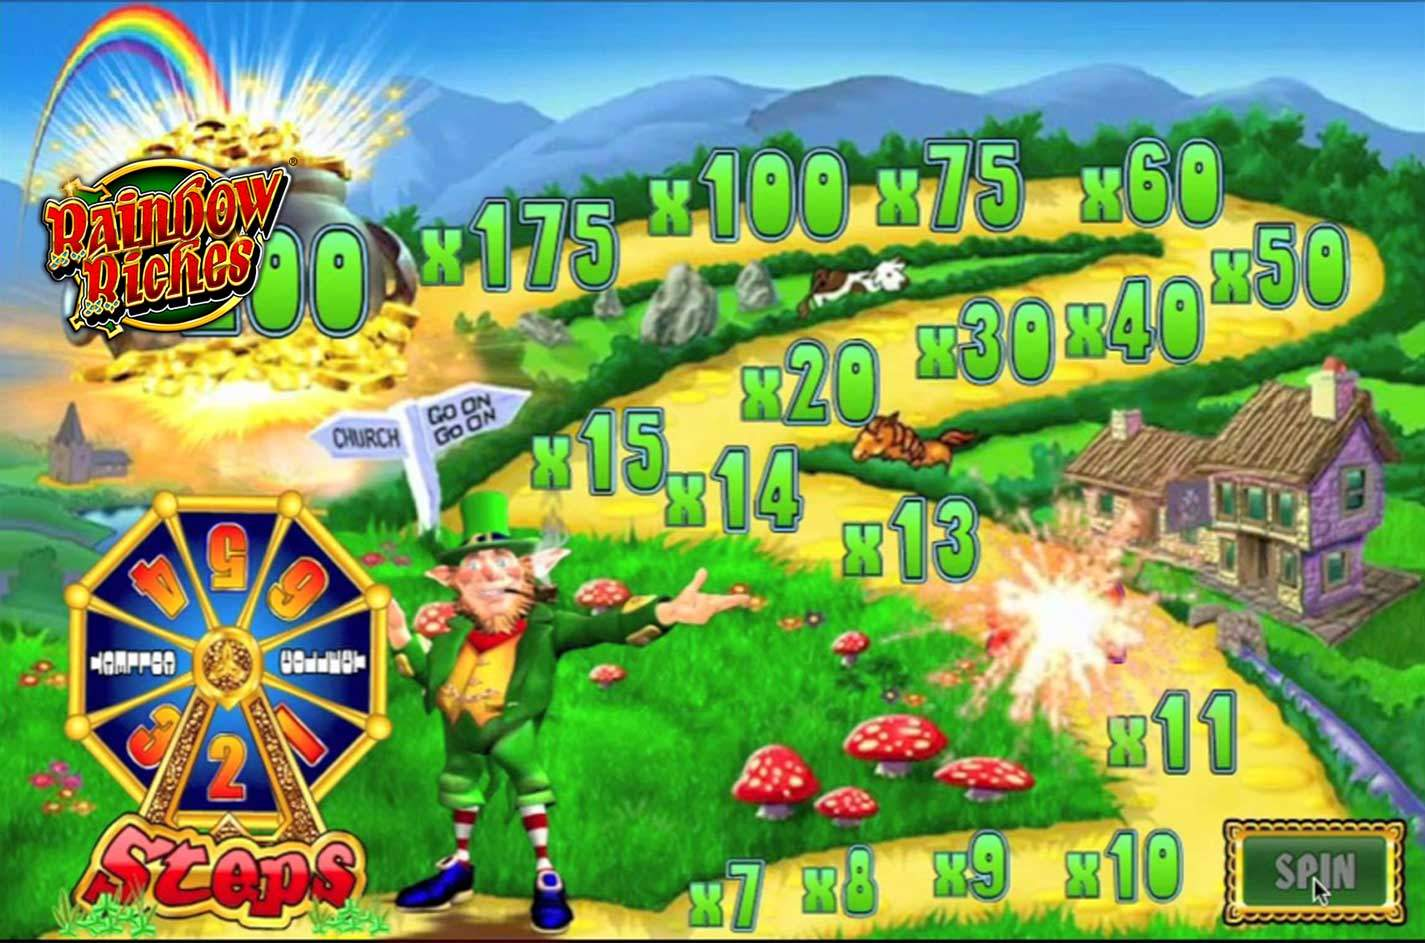 Rainbow Riches Slot Machine Play Online For Money